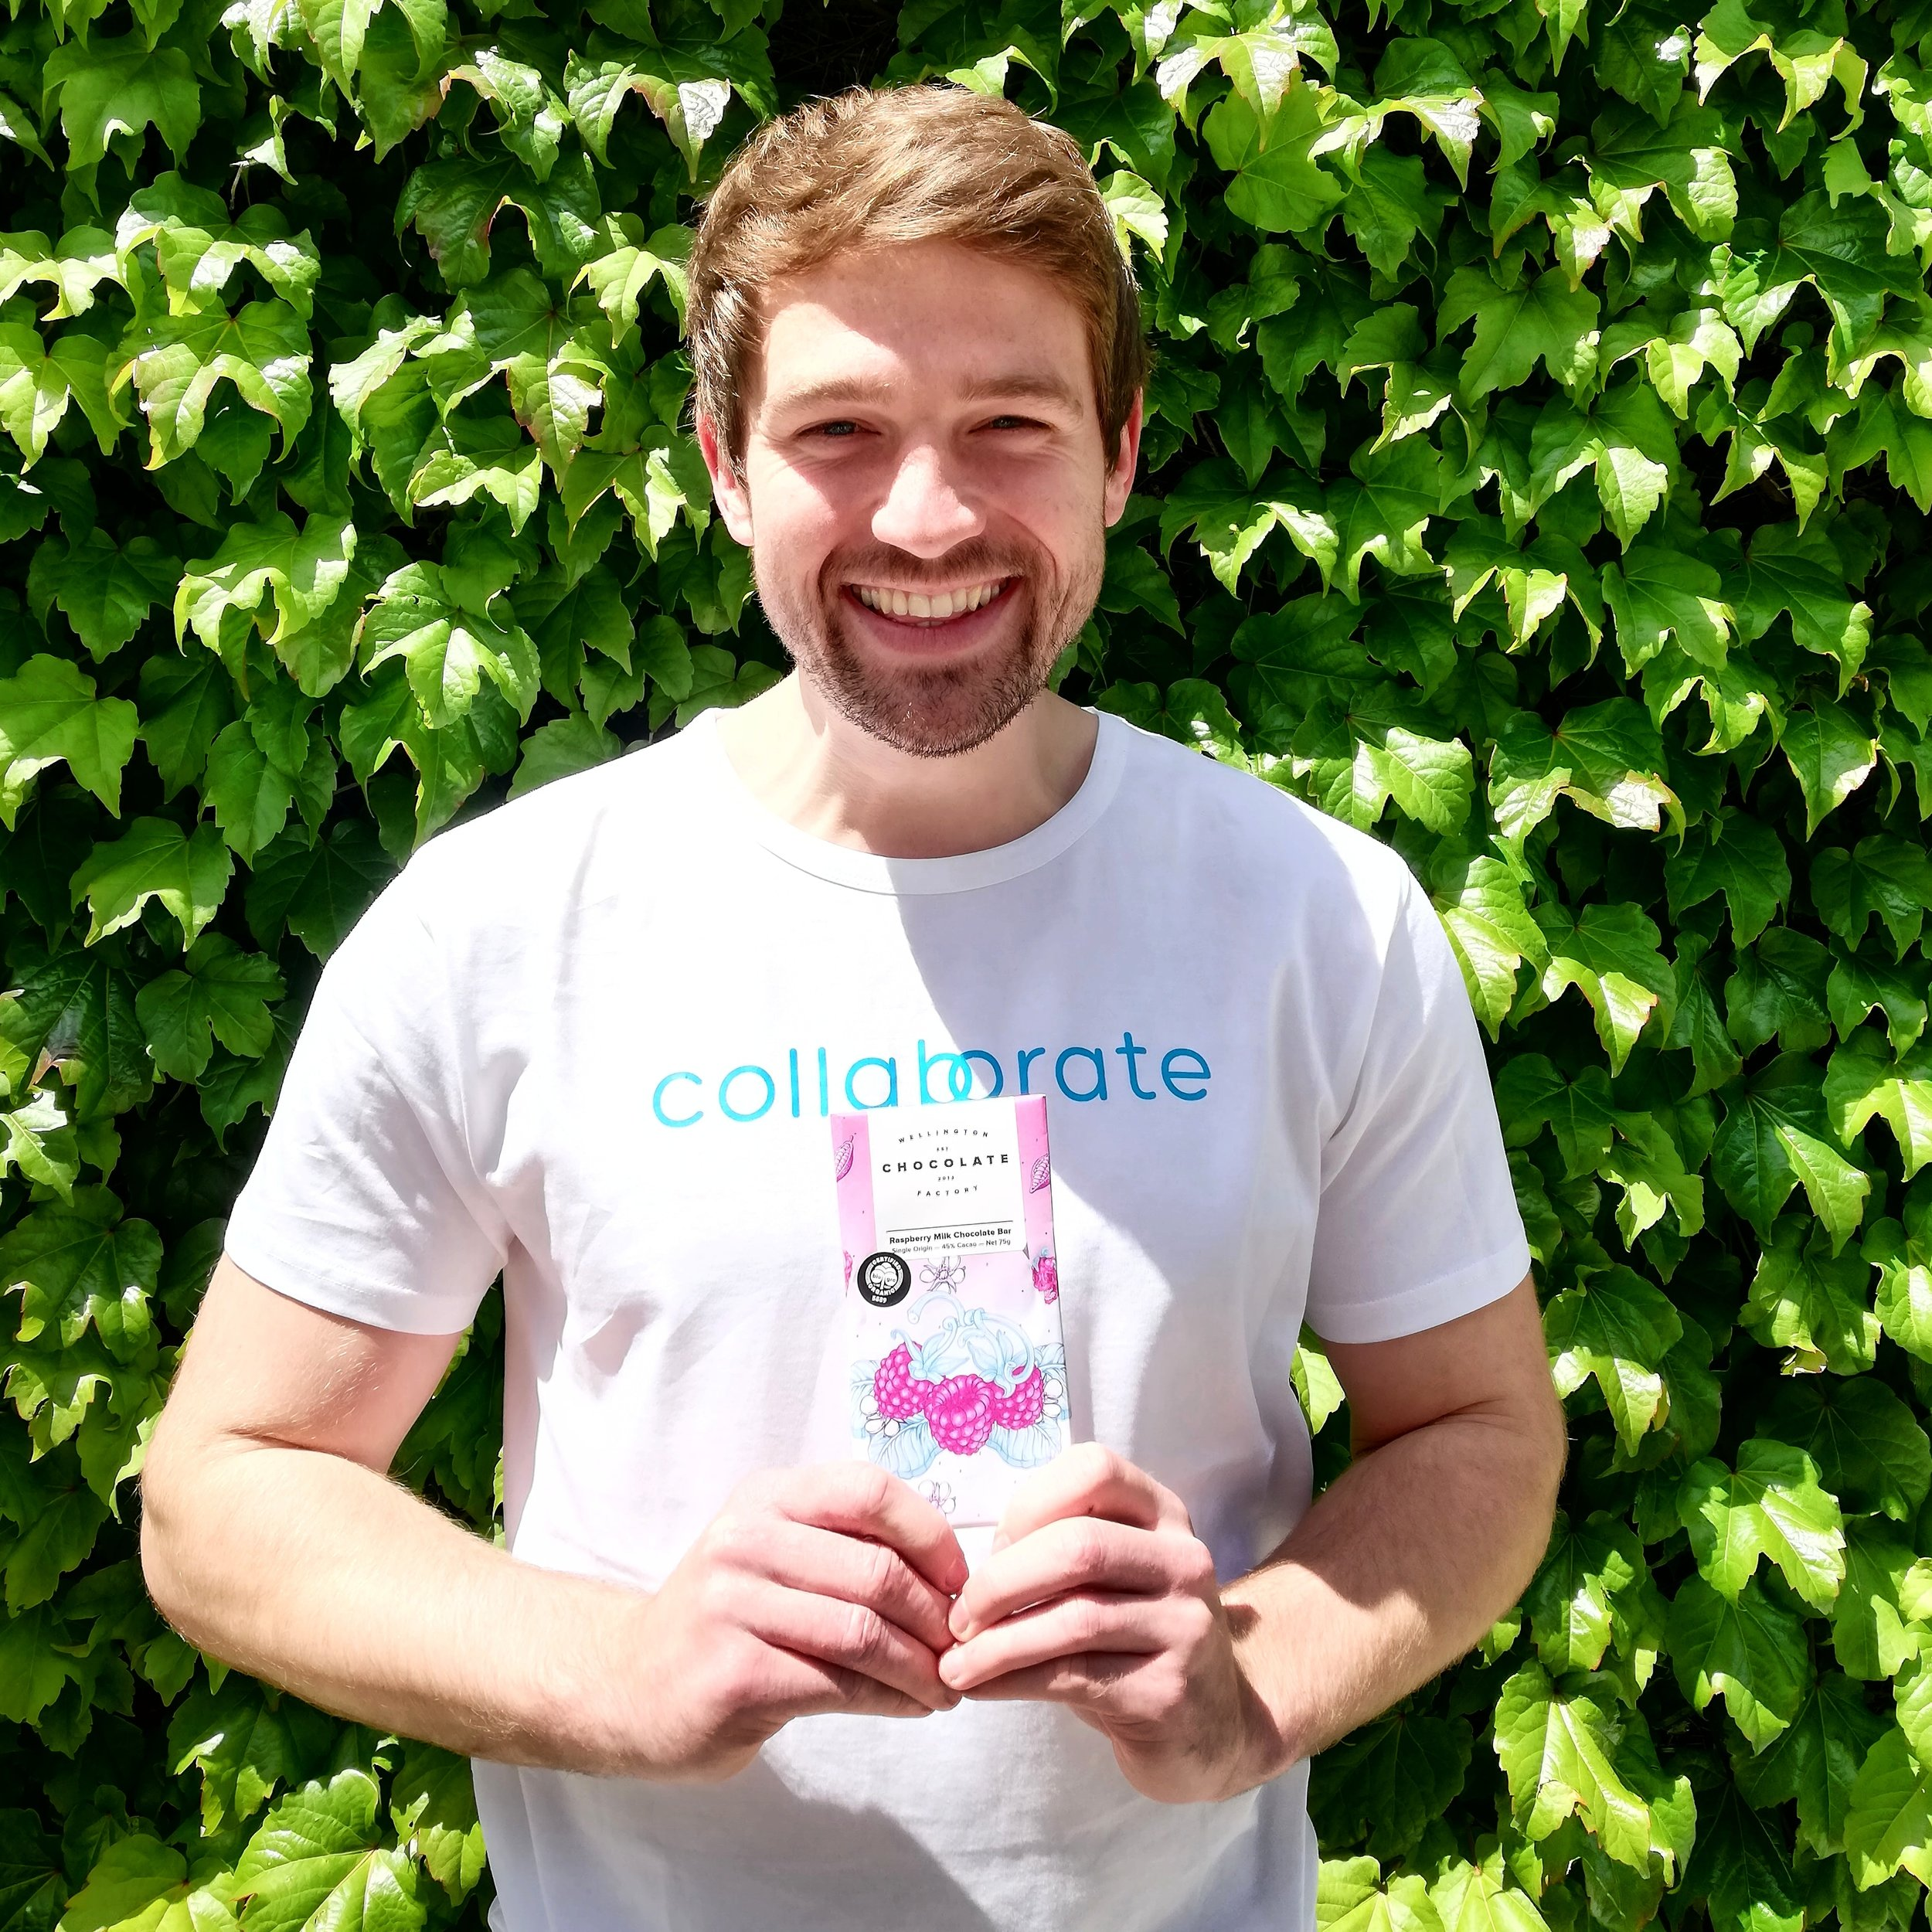 Become a collaborate volunteer - We are looking for collaborators to join our Collaborate team as volunteers to help out when we have events and spread the news and word of Collaborate.